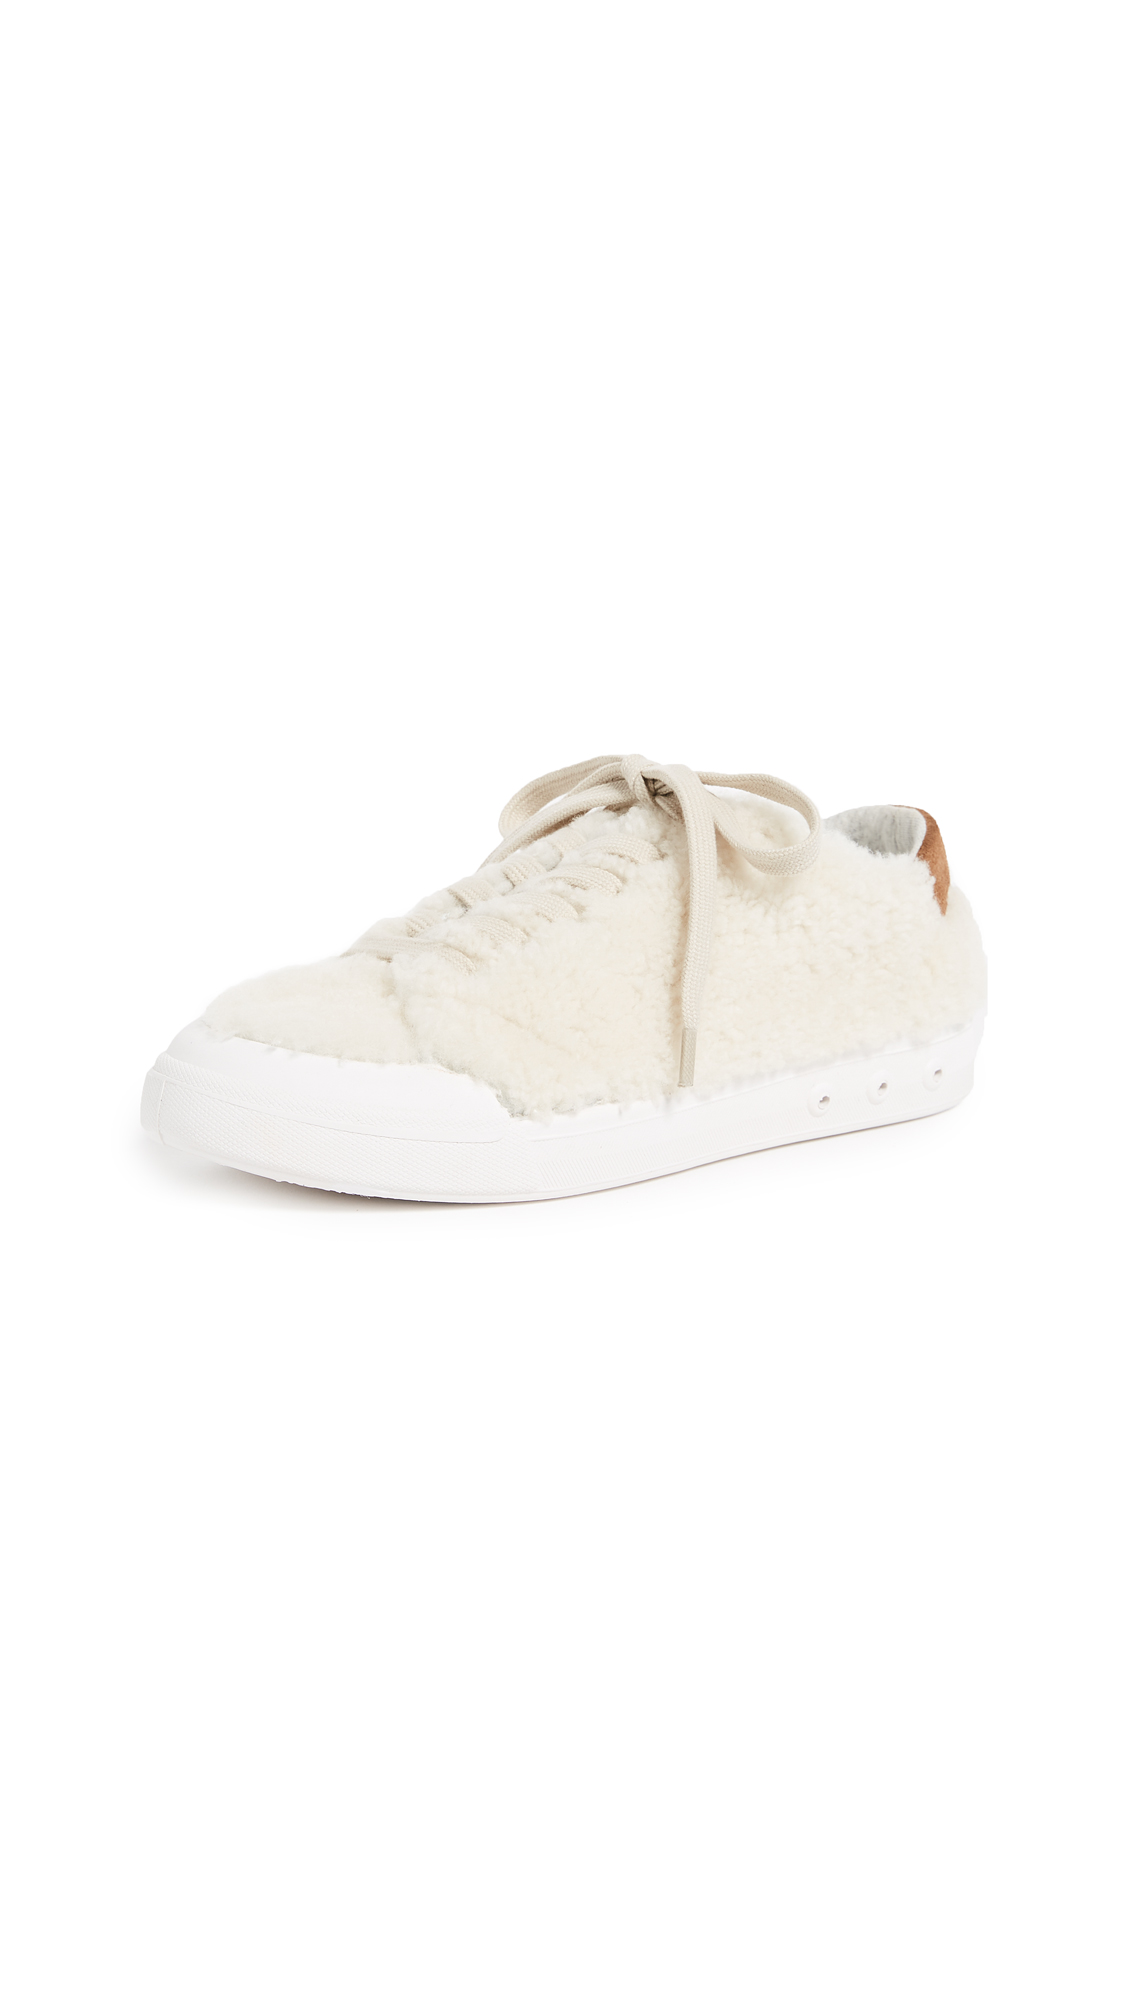 Rag & Bone Standard Issue Lace Up Sneakers - Ivory